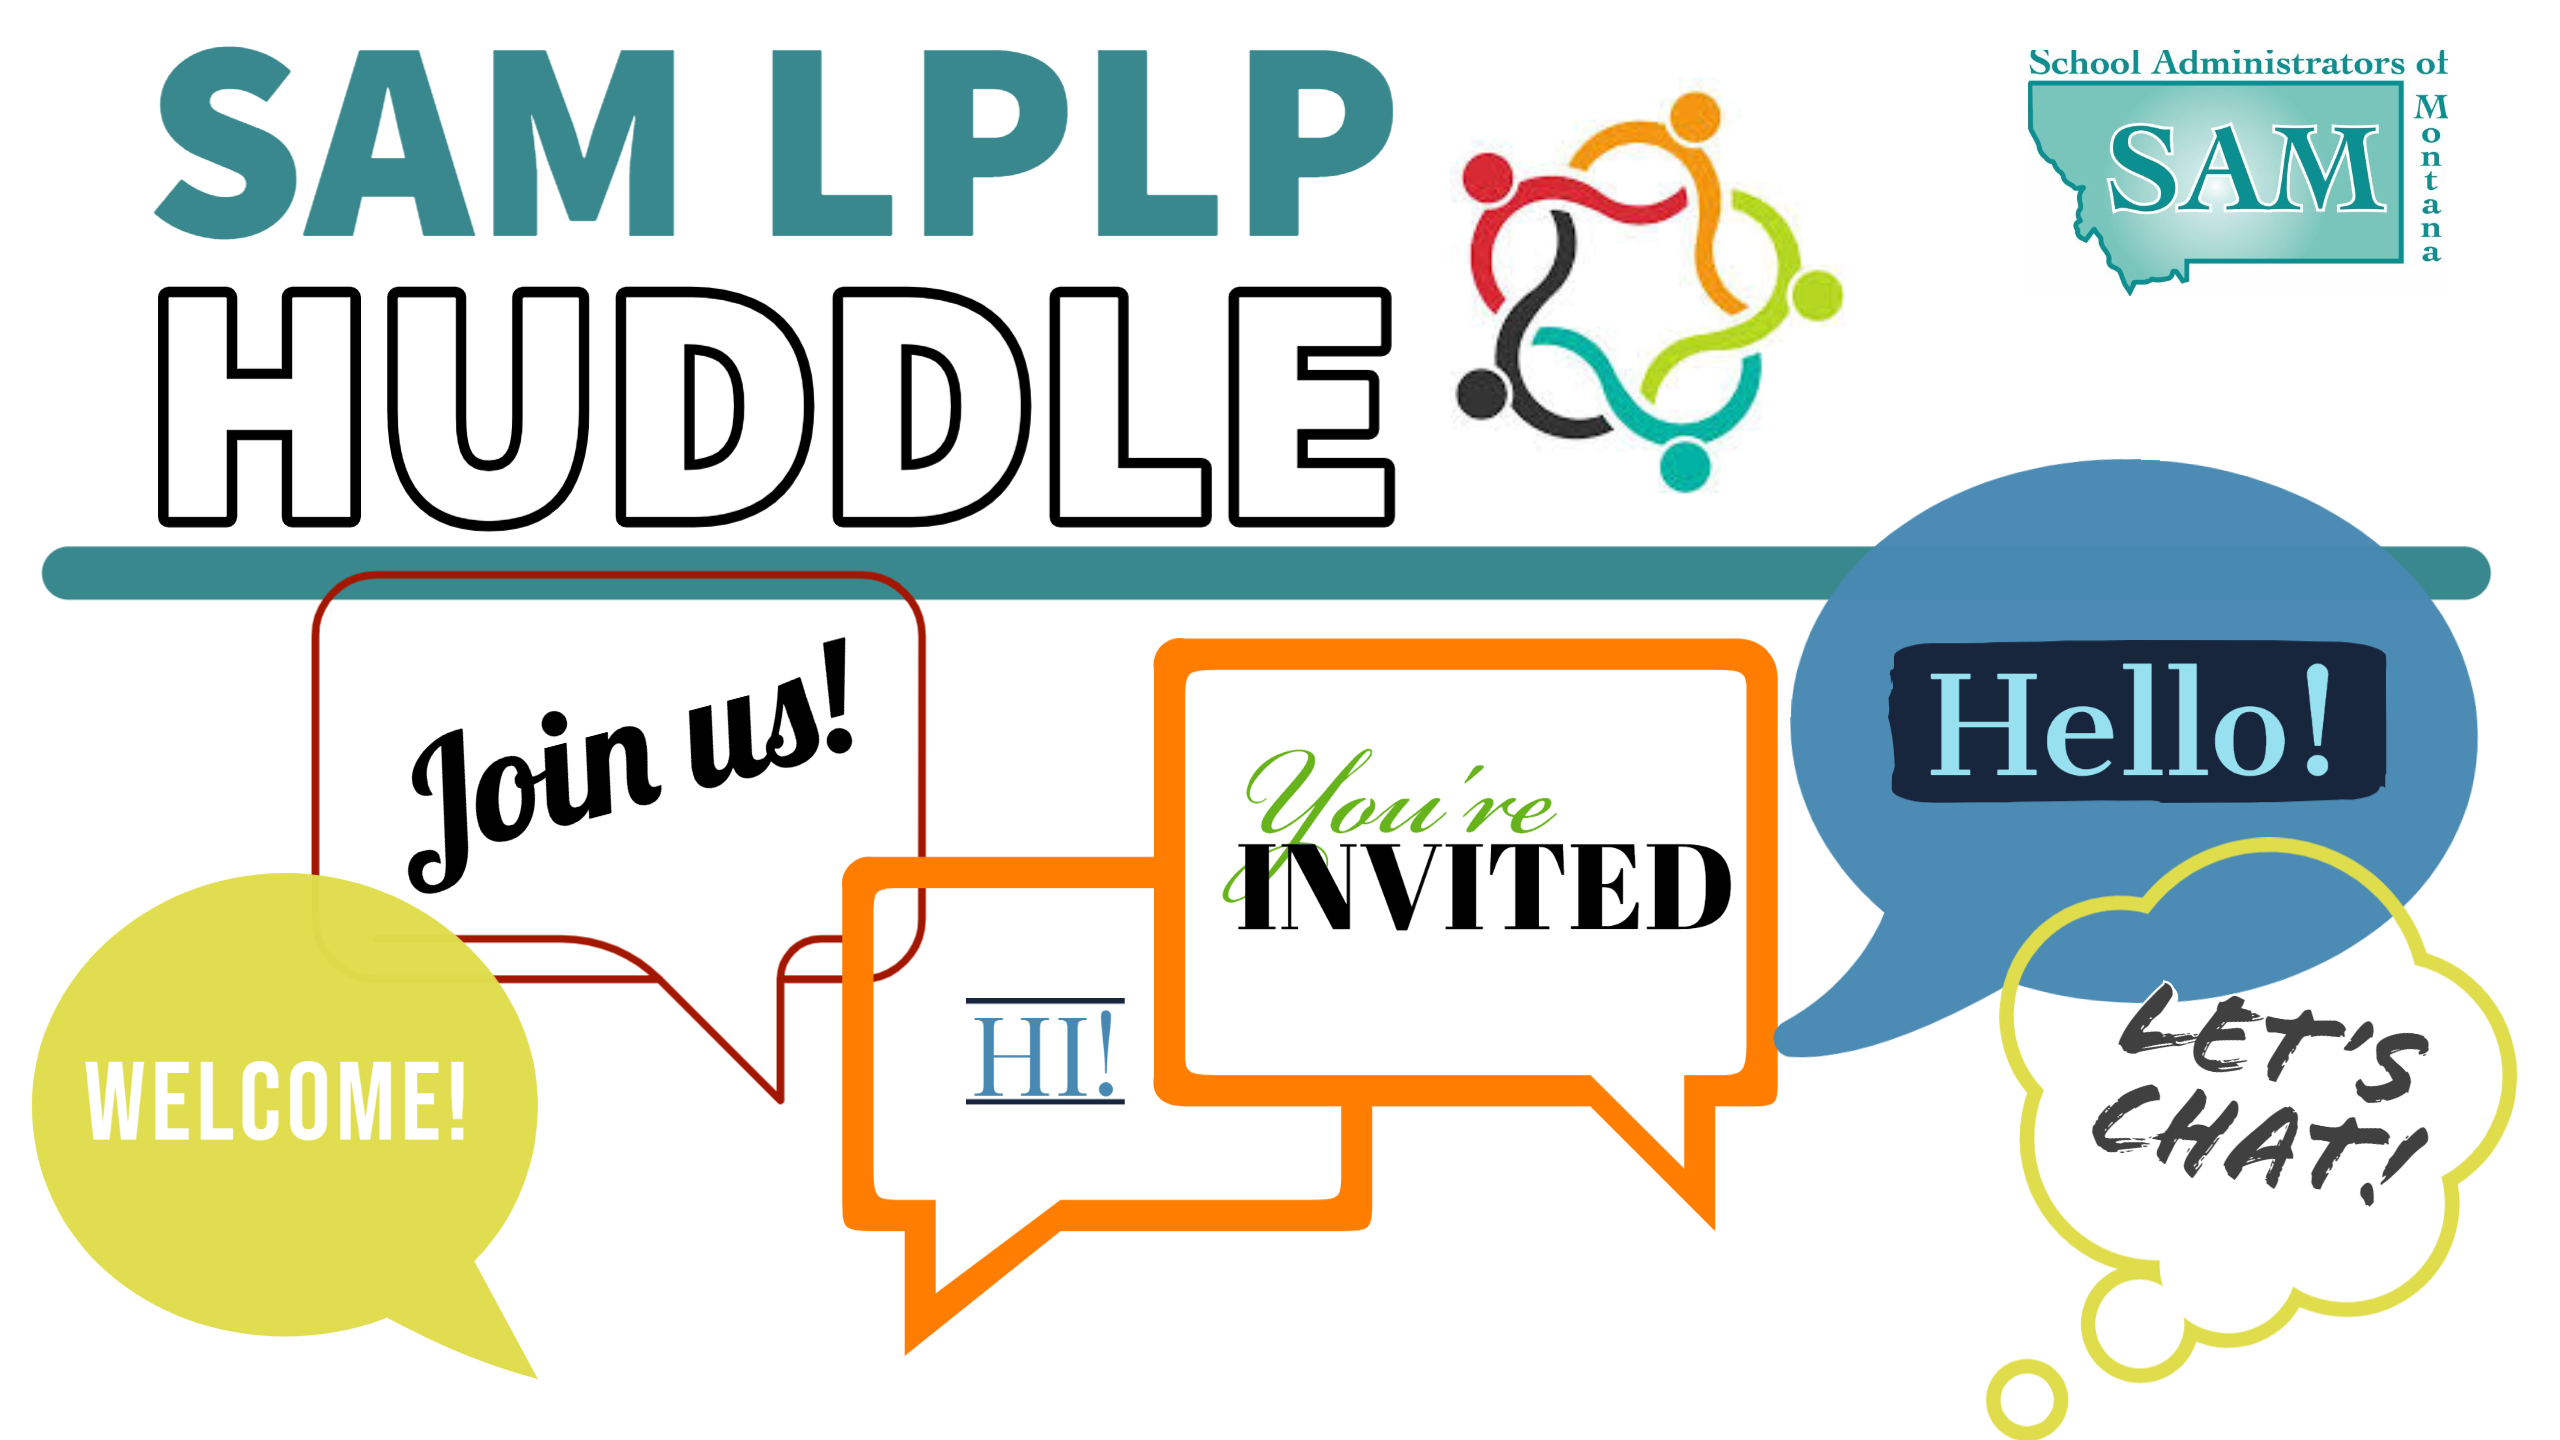 SAM_LPLP_Huddle_Graphic.png - 700.51 Kb